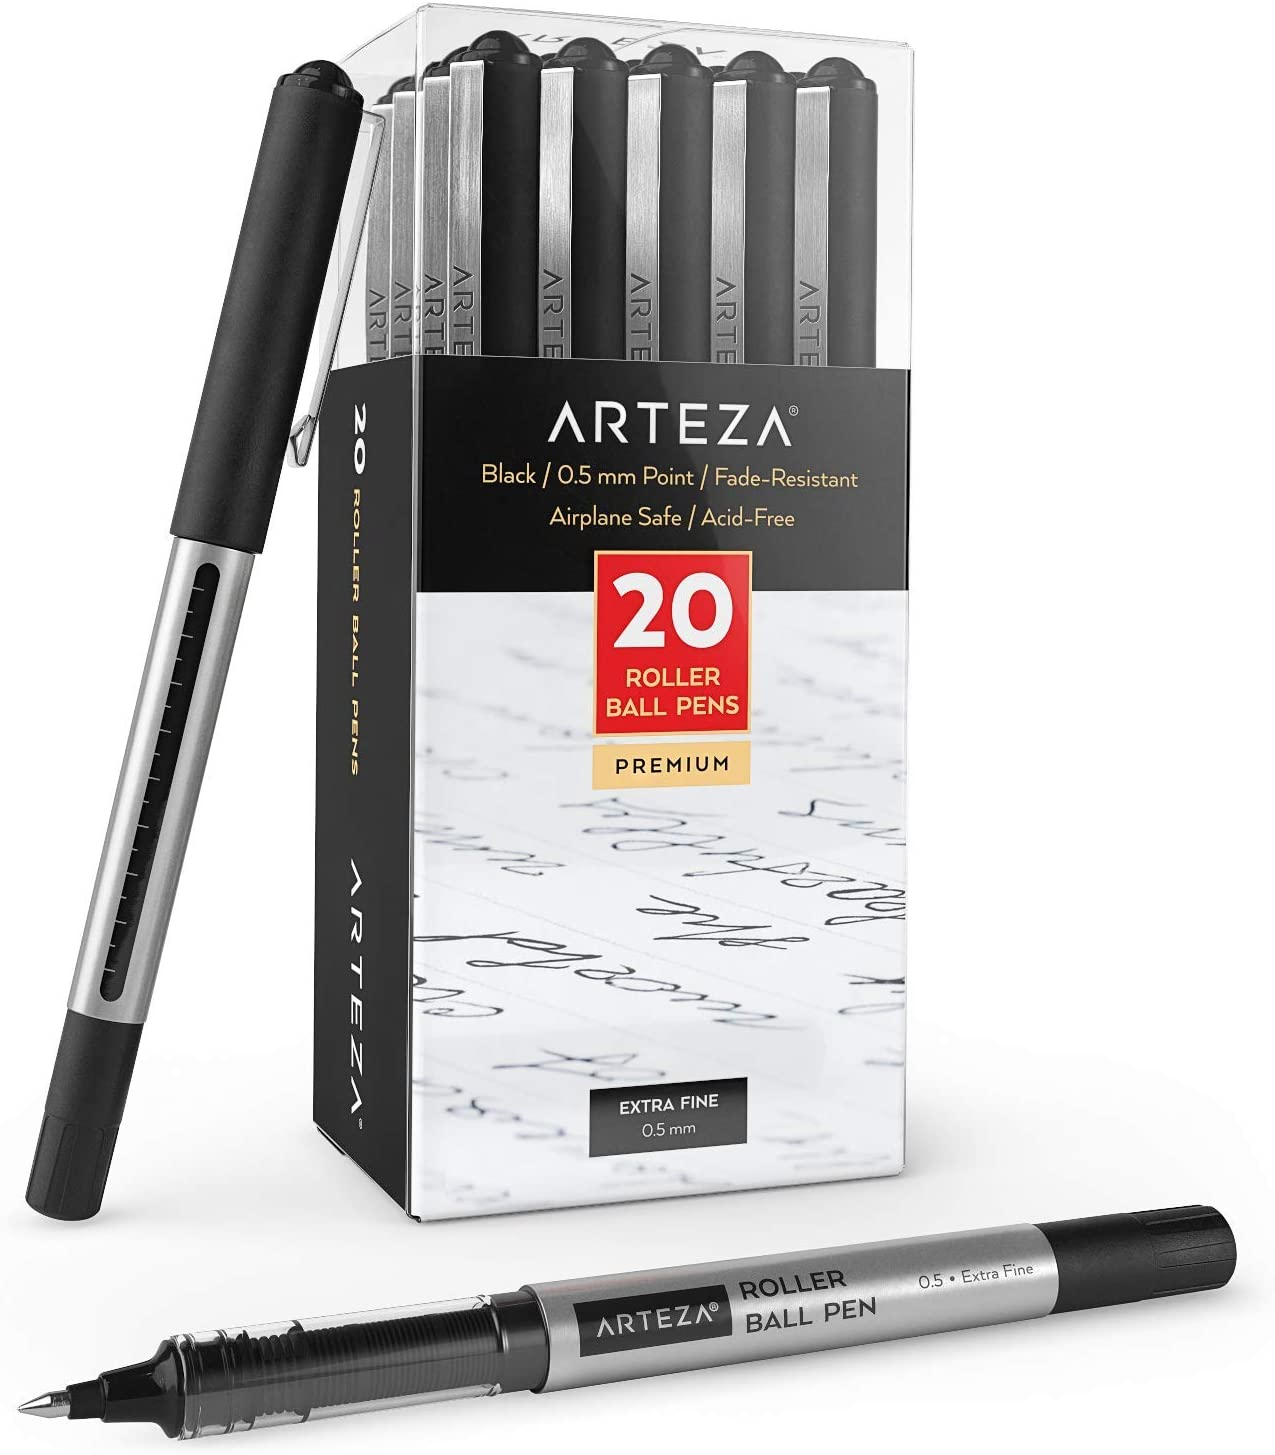 Arteza Rollerball Pens, Pack of 20, 0.5mm Blue Liquid Ink Pens for Bullet Journaling, Fine Point Rollerball, Office Supplies for Writing, Taking Notes & Sketching: Office Products